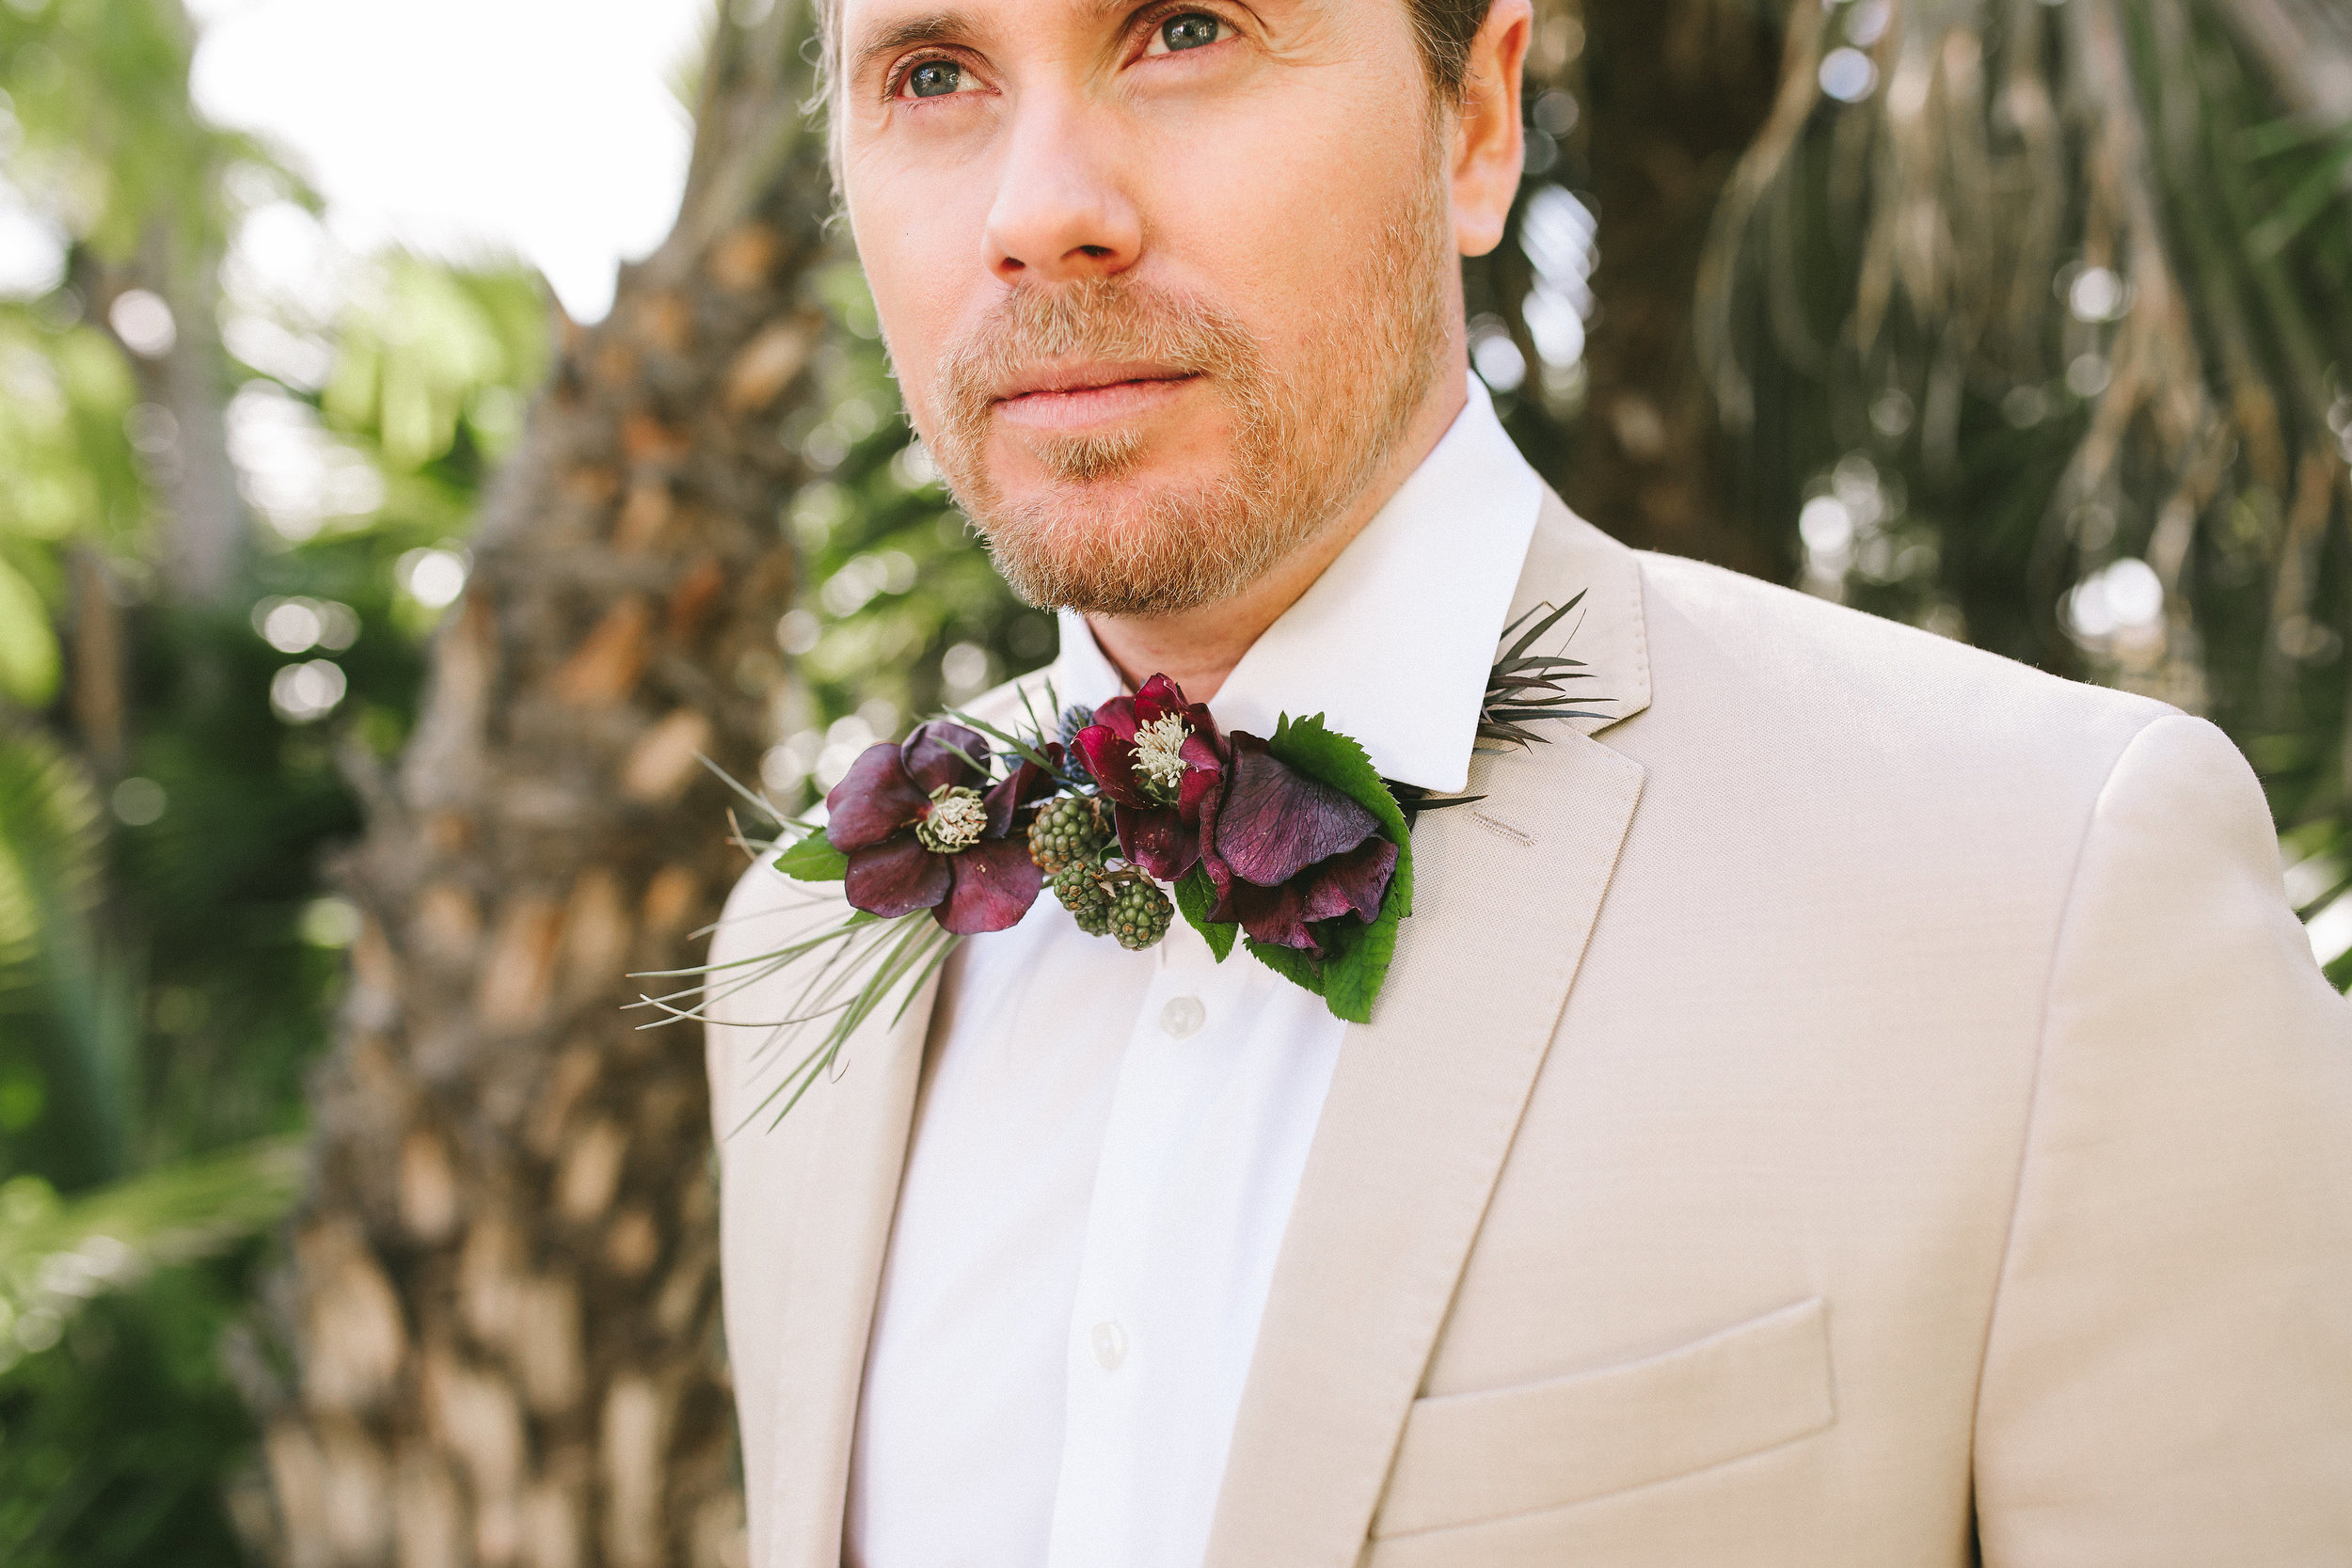 floral bow tie made of real flowers.jpg